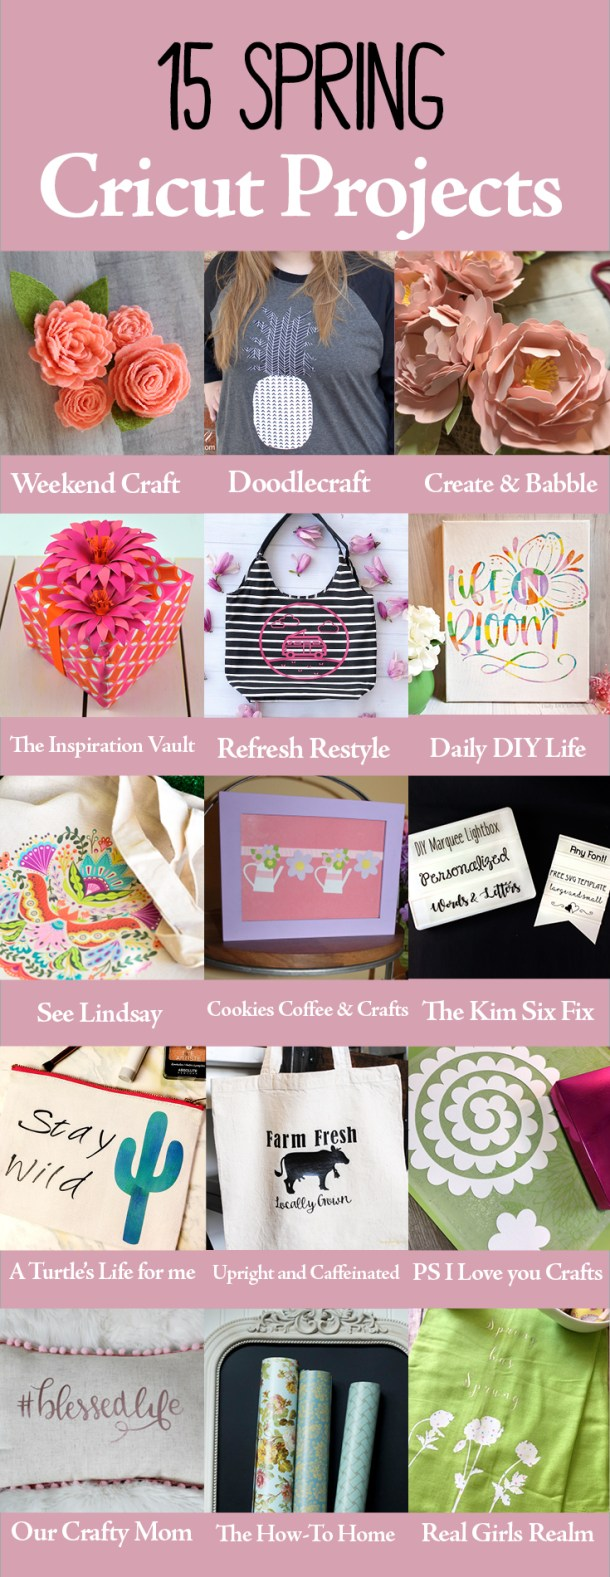 Here are 15 Spring Cricut Projects to inspire your creativity. Use the Cricut Maker or the Cricut Explore. #cricut #cricutmaker #cricutexplore